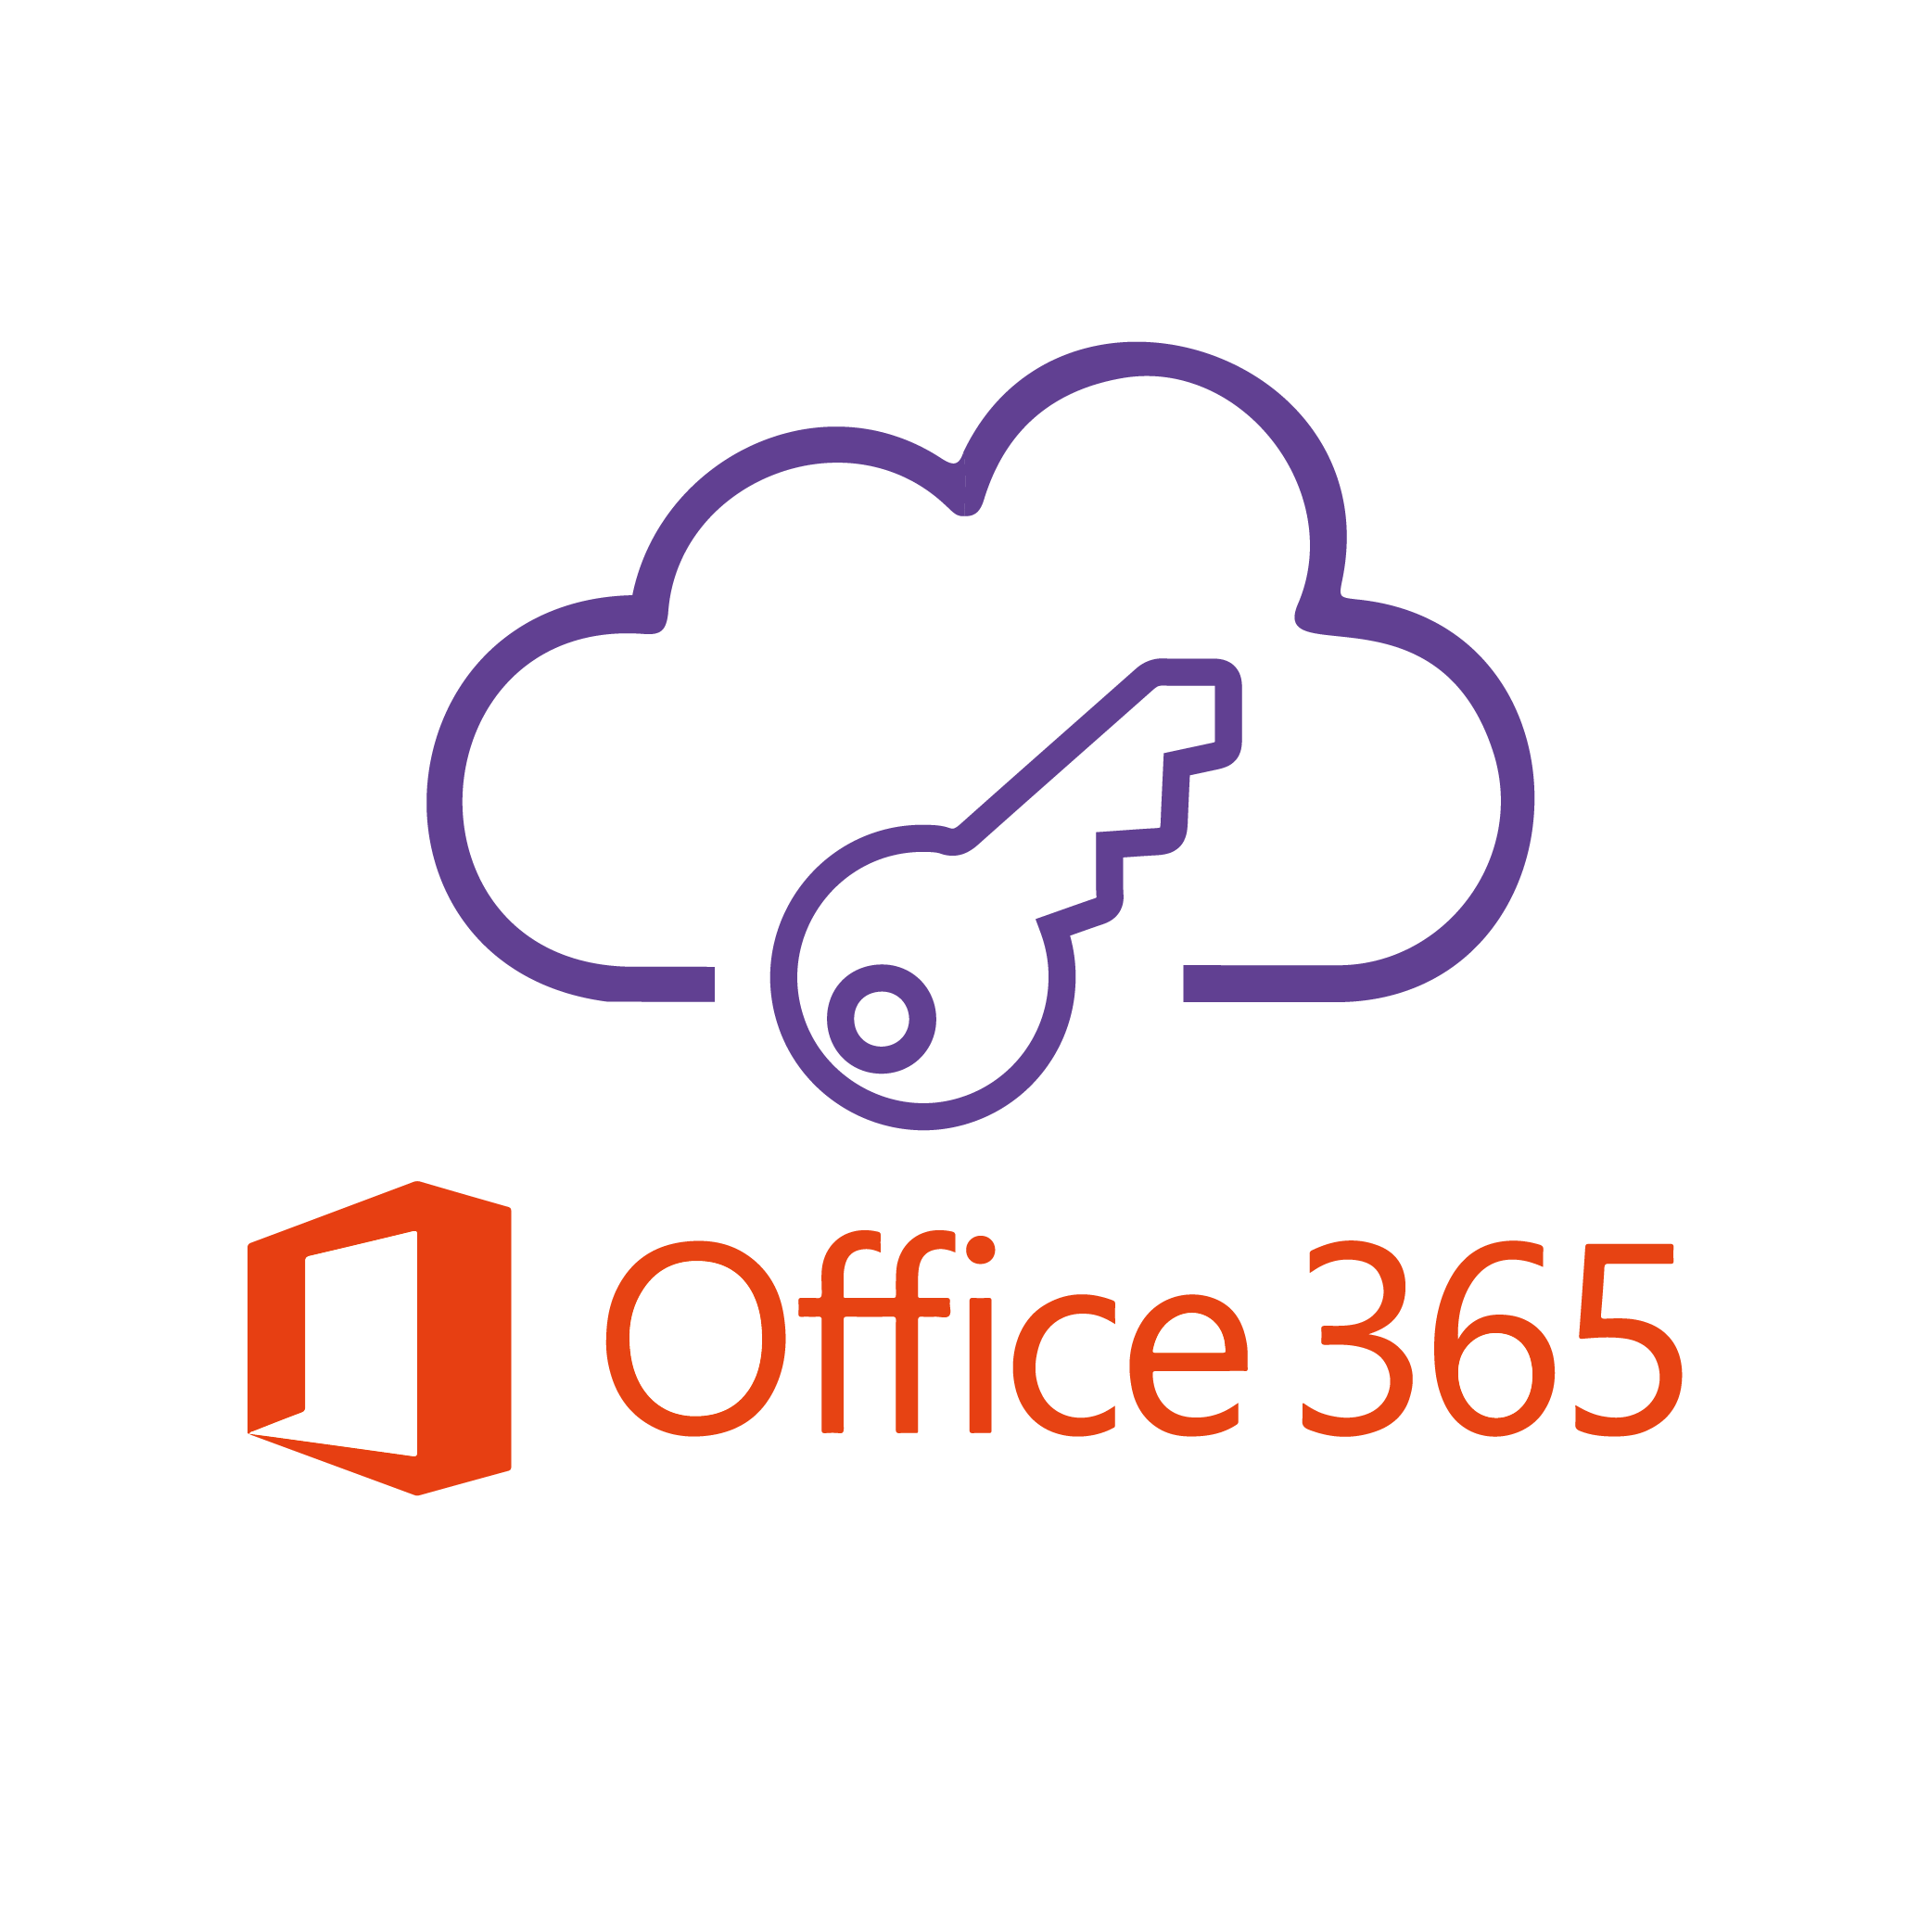 SSO Office 365